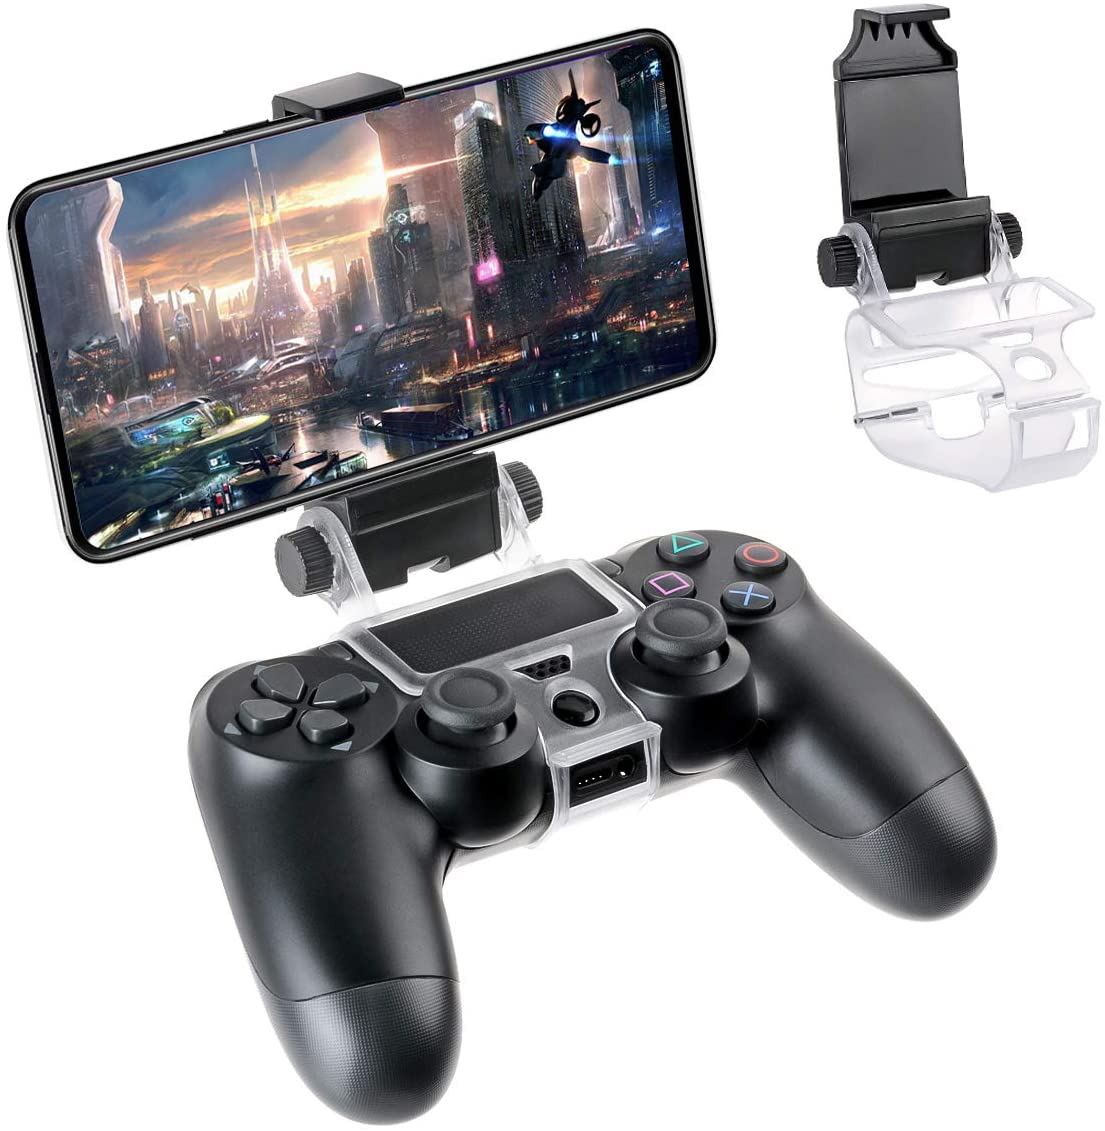 FiiMan PS4 Controller Phone Clip, PS4 Slim Pro Controller Grip for Android Smart Phone, 180 Degree Gaming Holder Mount Stand Bracket for Playstation 4 Game Controller